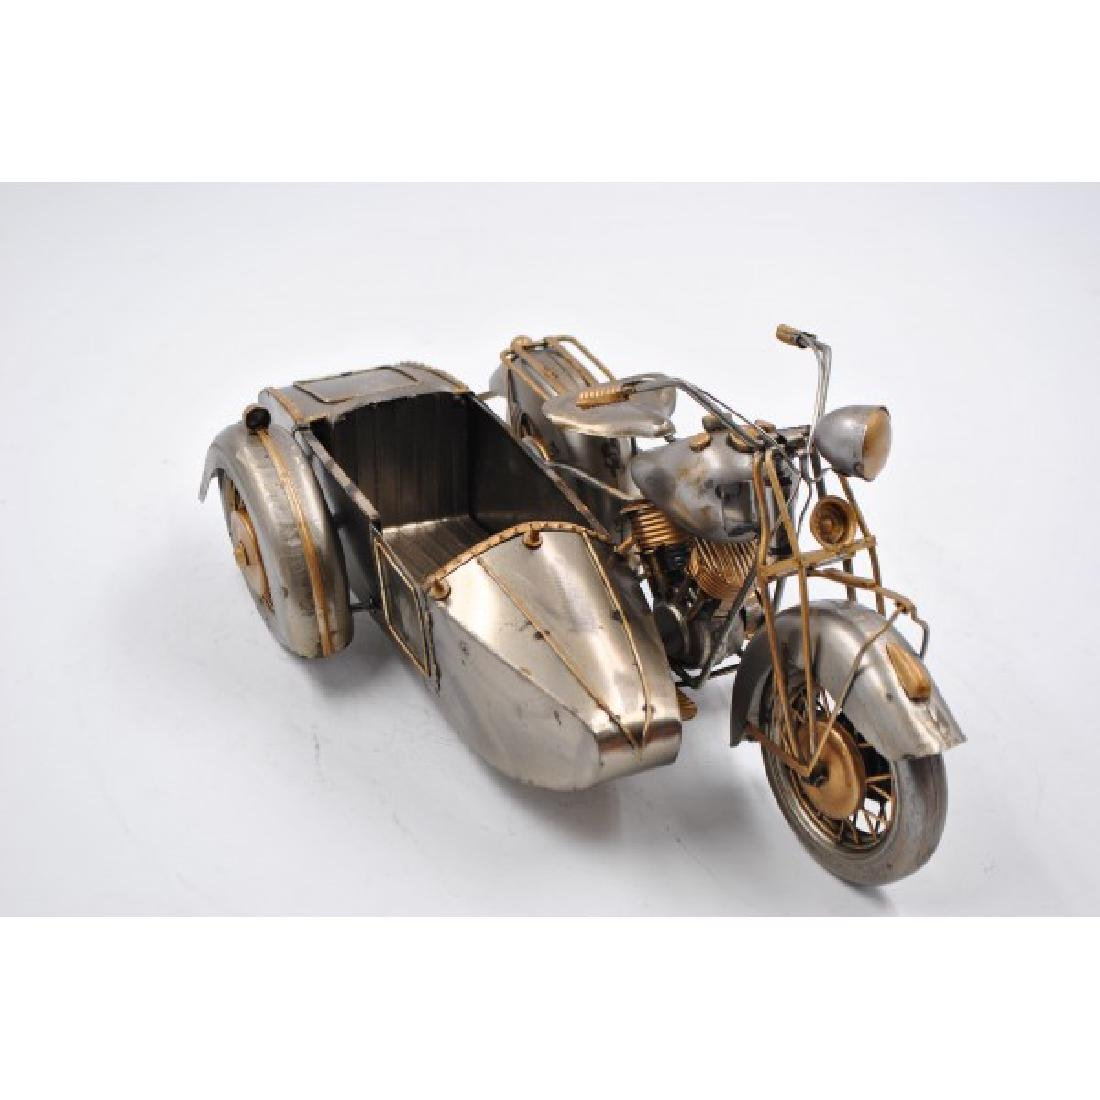 Handmade Metal Halley Motorcycle